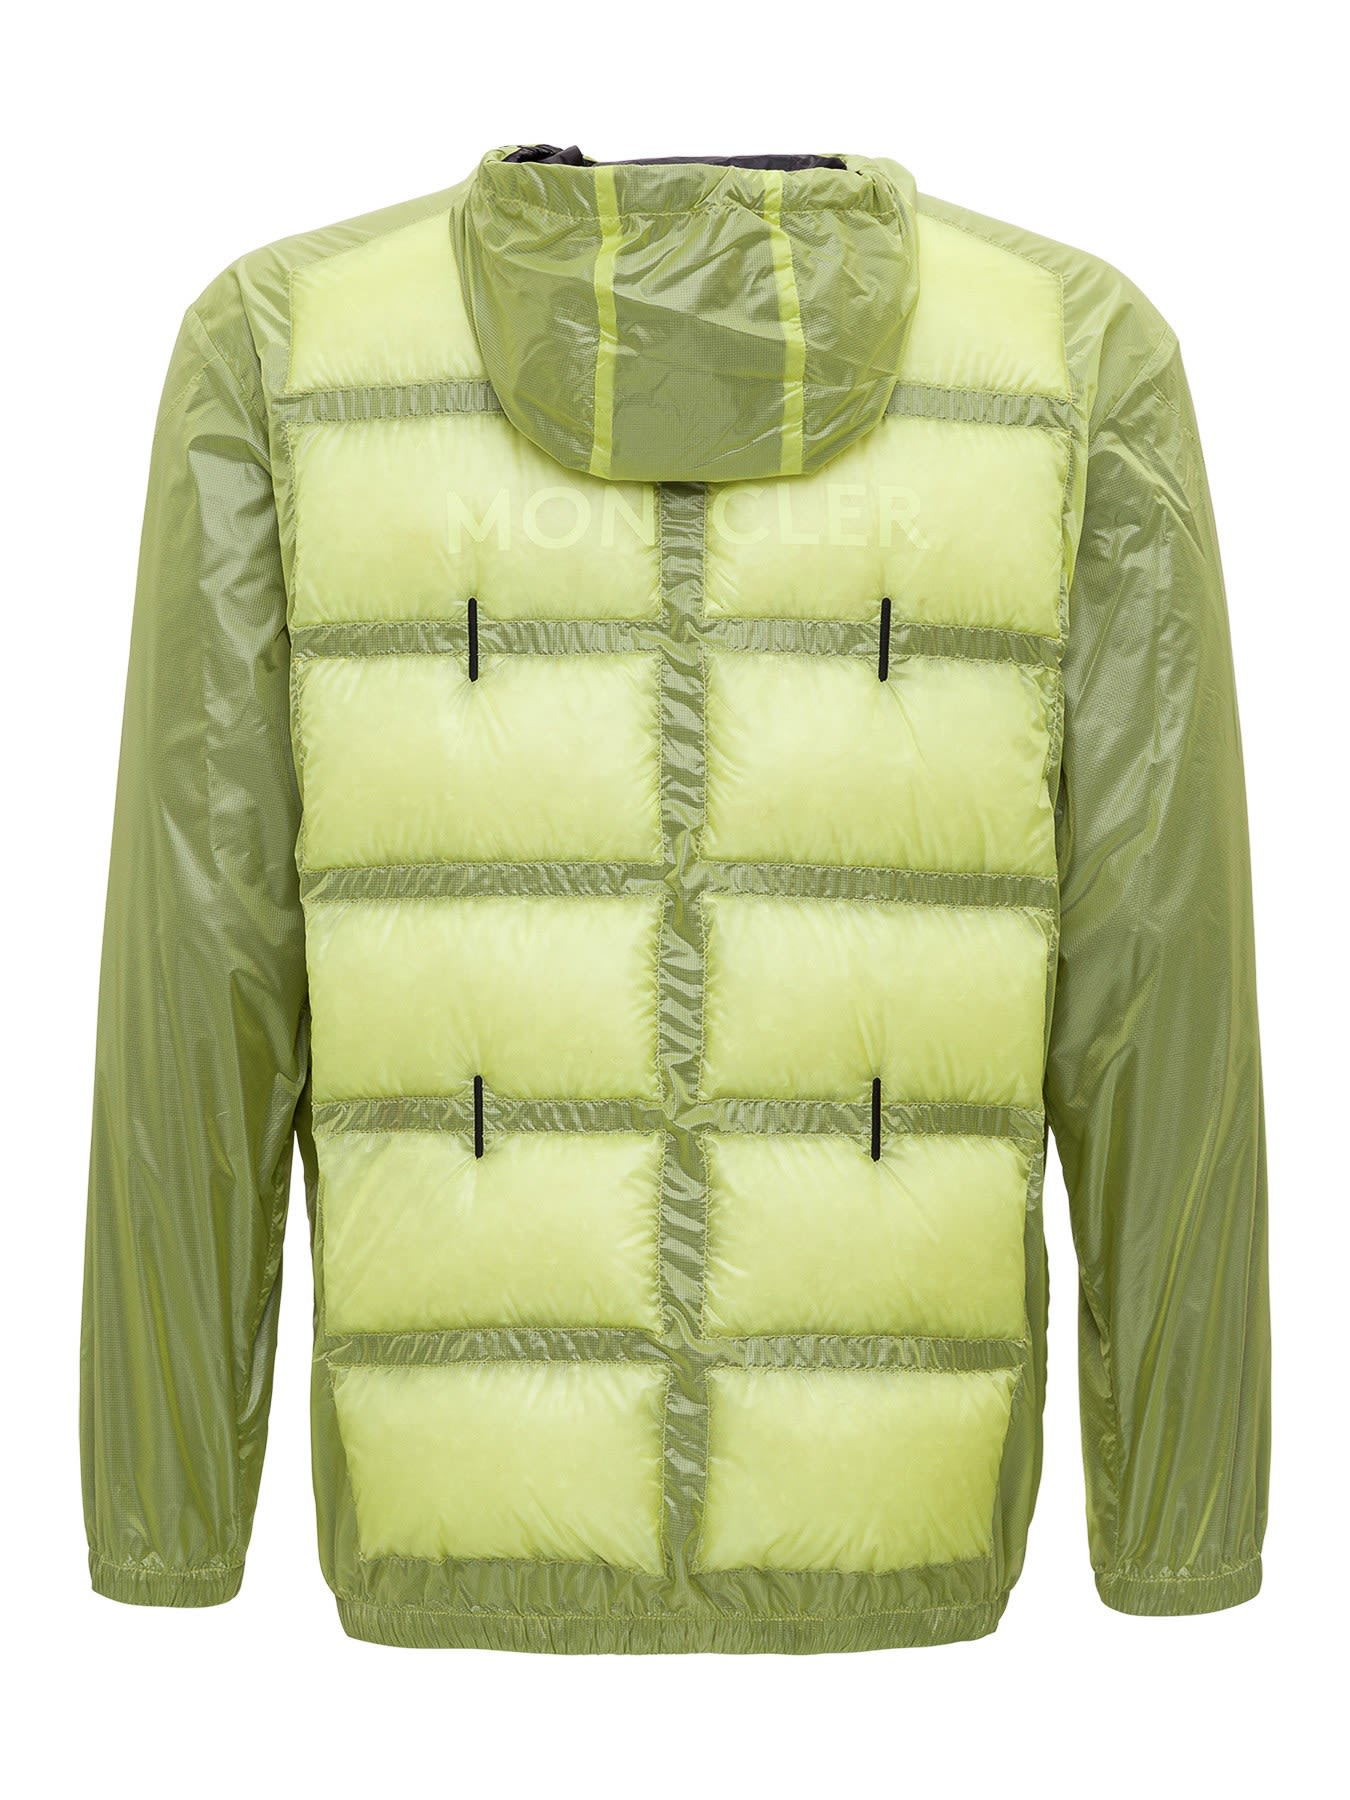 Moncler Genius Hiles Jacket By Craig Green